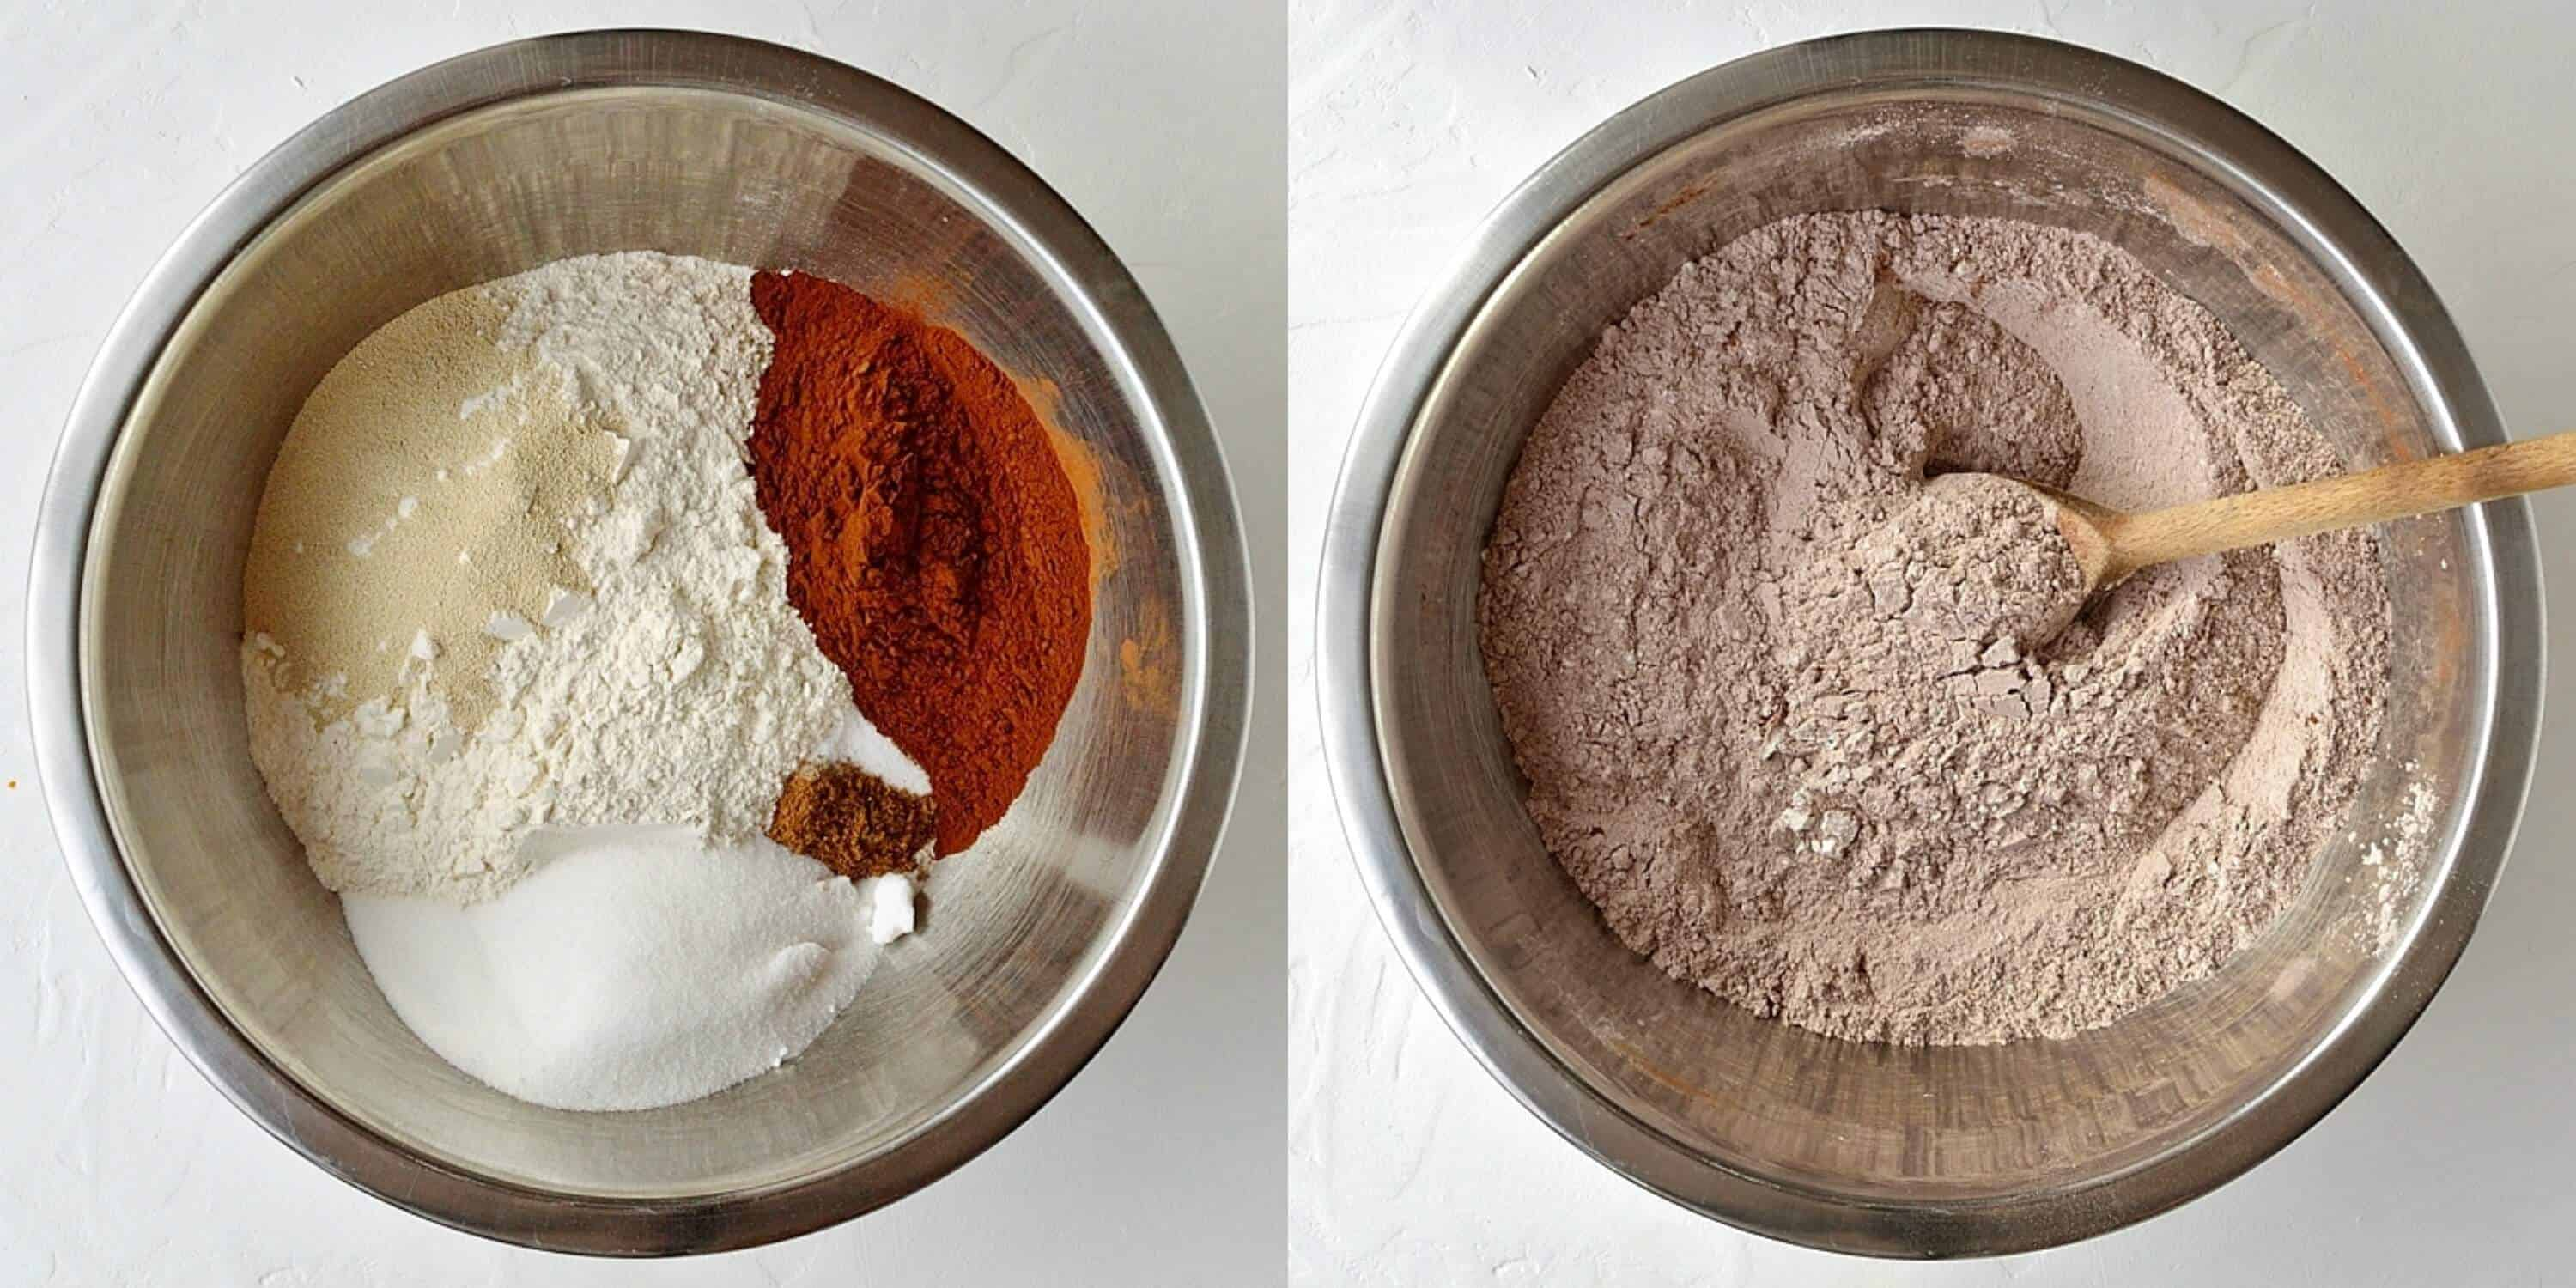 step 1 - mixing the dry ingredients